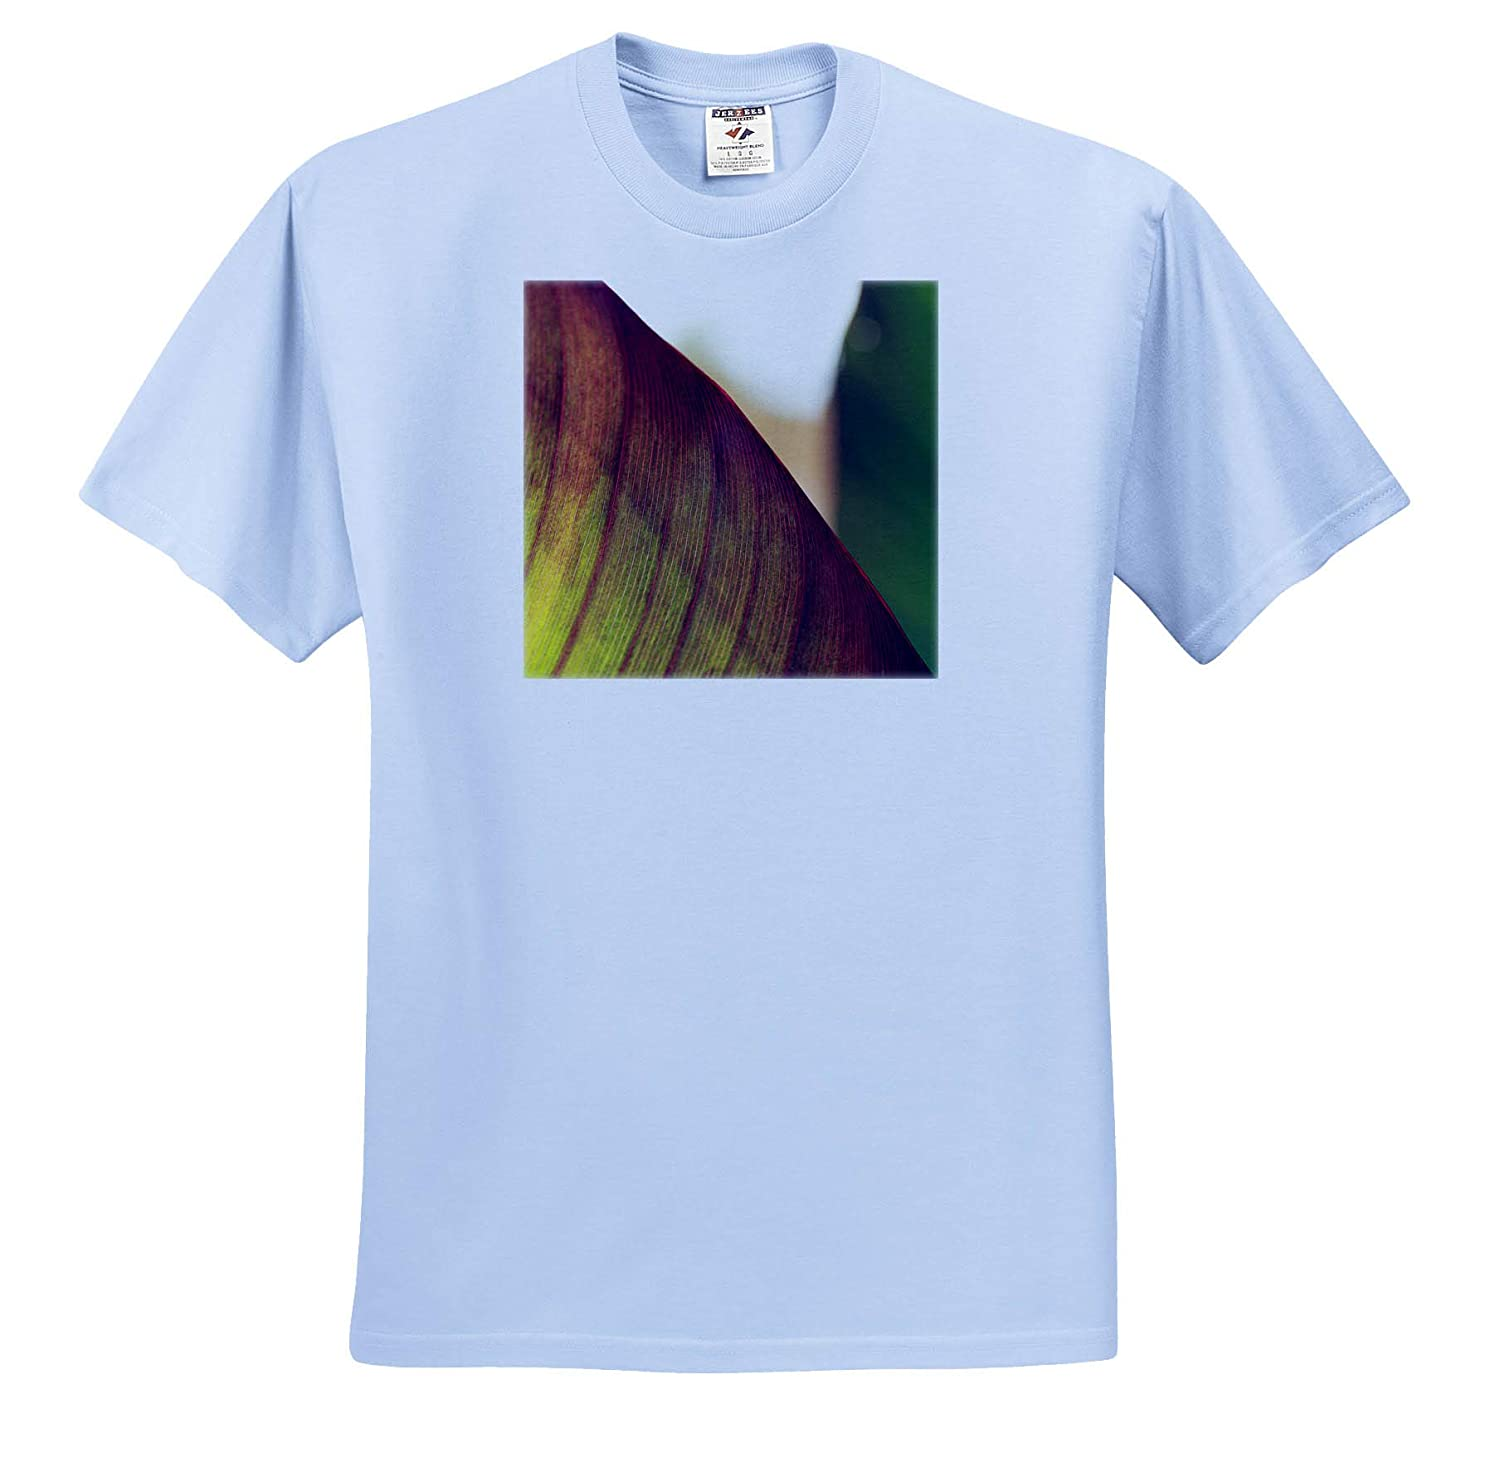 Plants ts/_320128 - Adult T-Shirt XL Macro Photograph of a Tropical Canna Lily Leaf 3dRose Stamp City